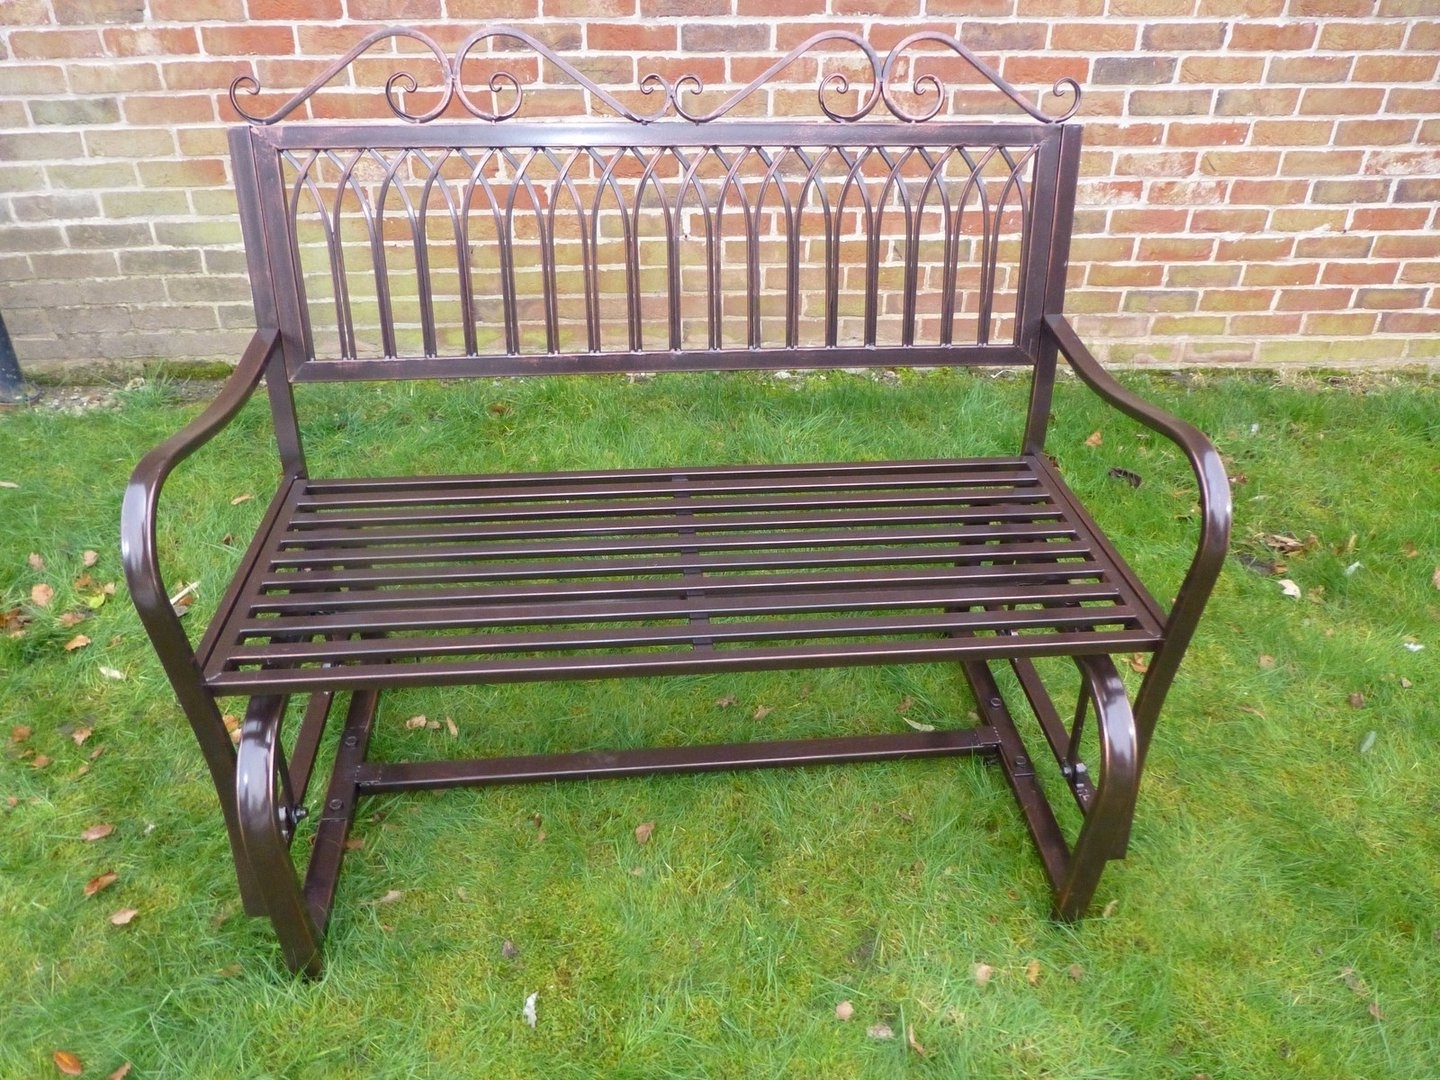 Patio Furniture Rocking Benches With Well Liked Garden Furniture – Ornate Bronze Metal Rocking Bench – 2 Seater (View 13 of 15)